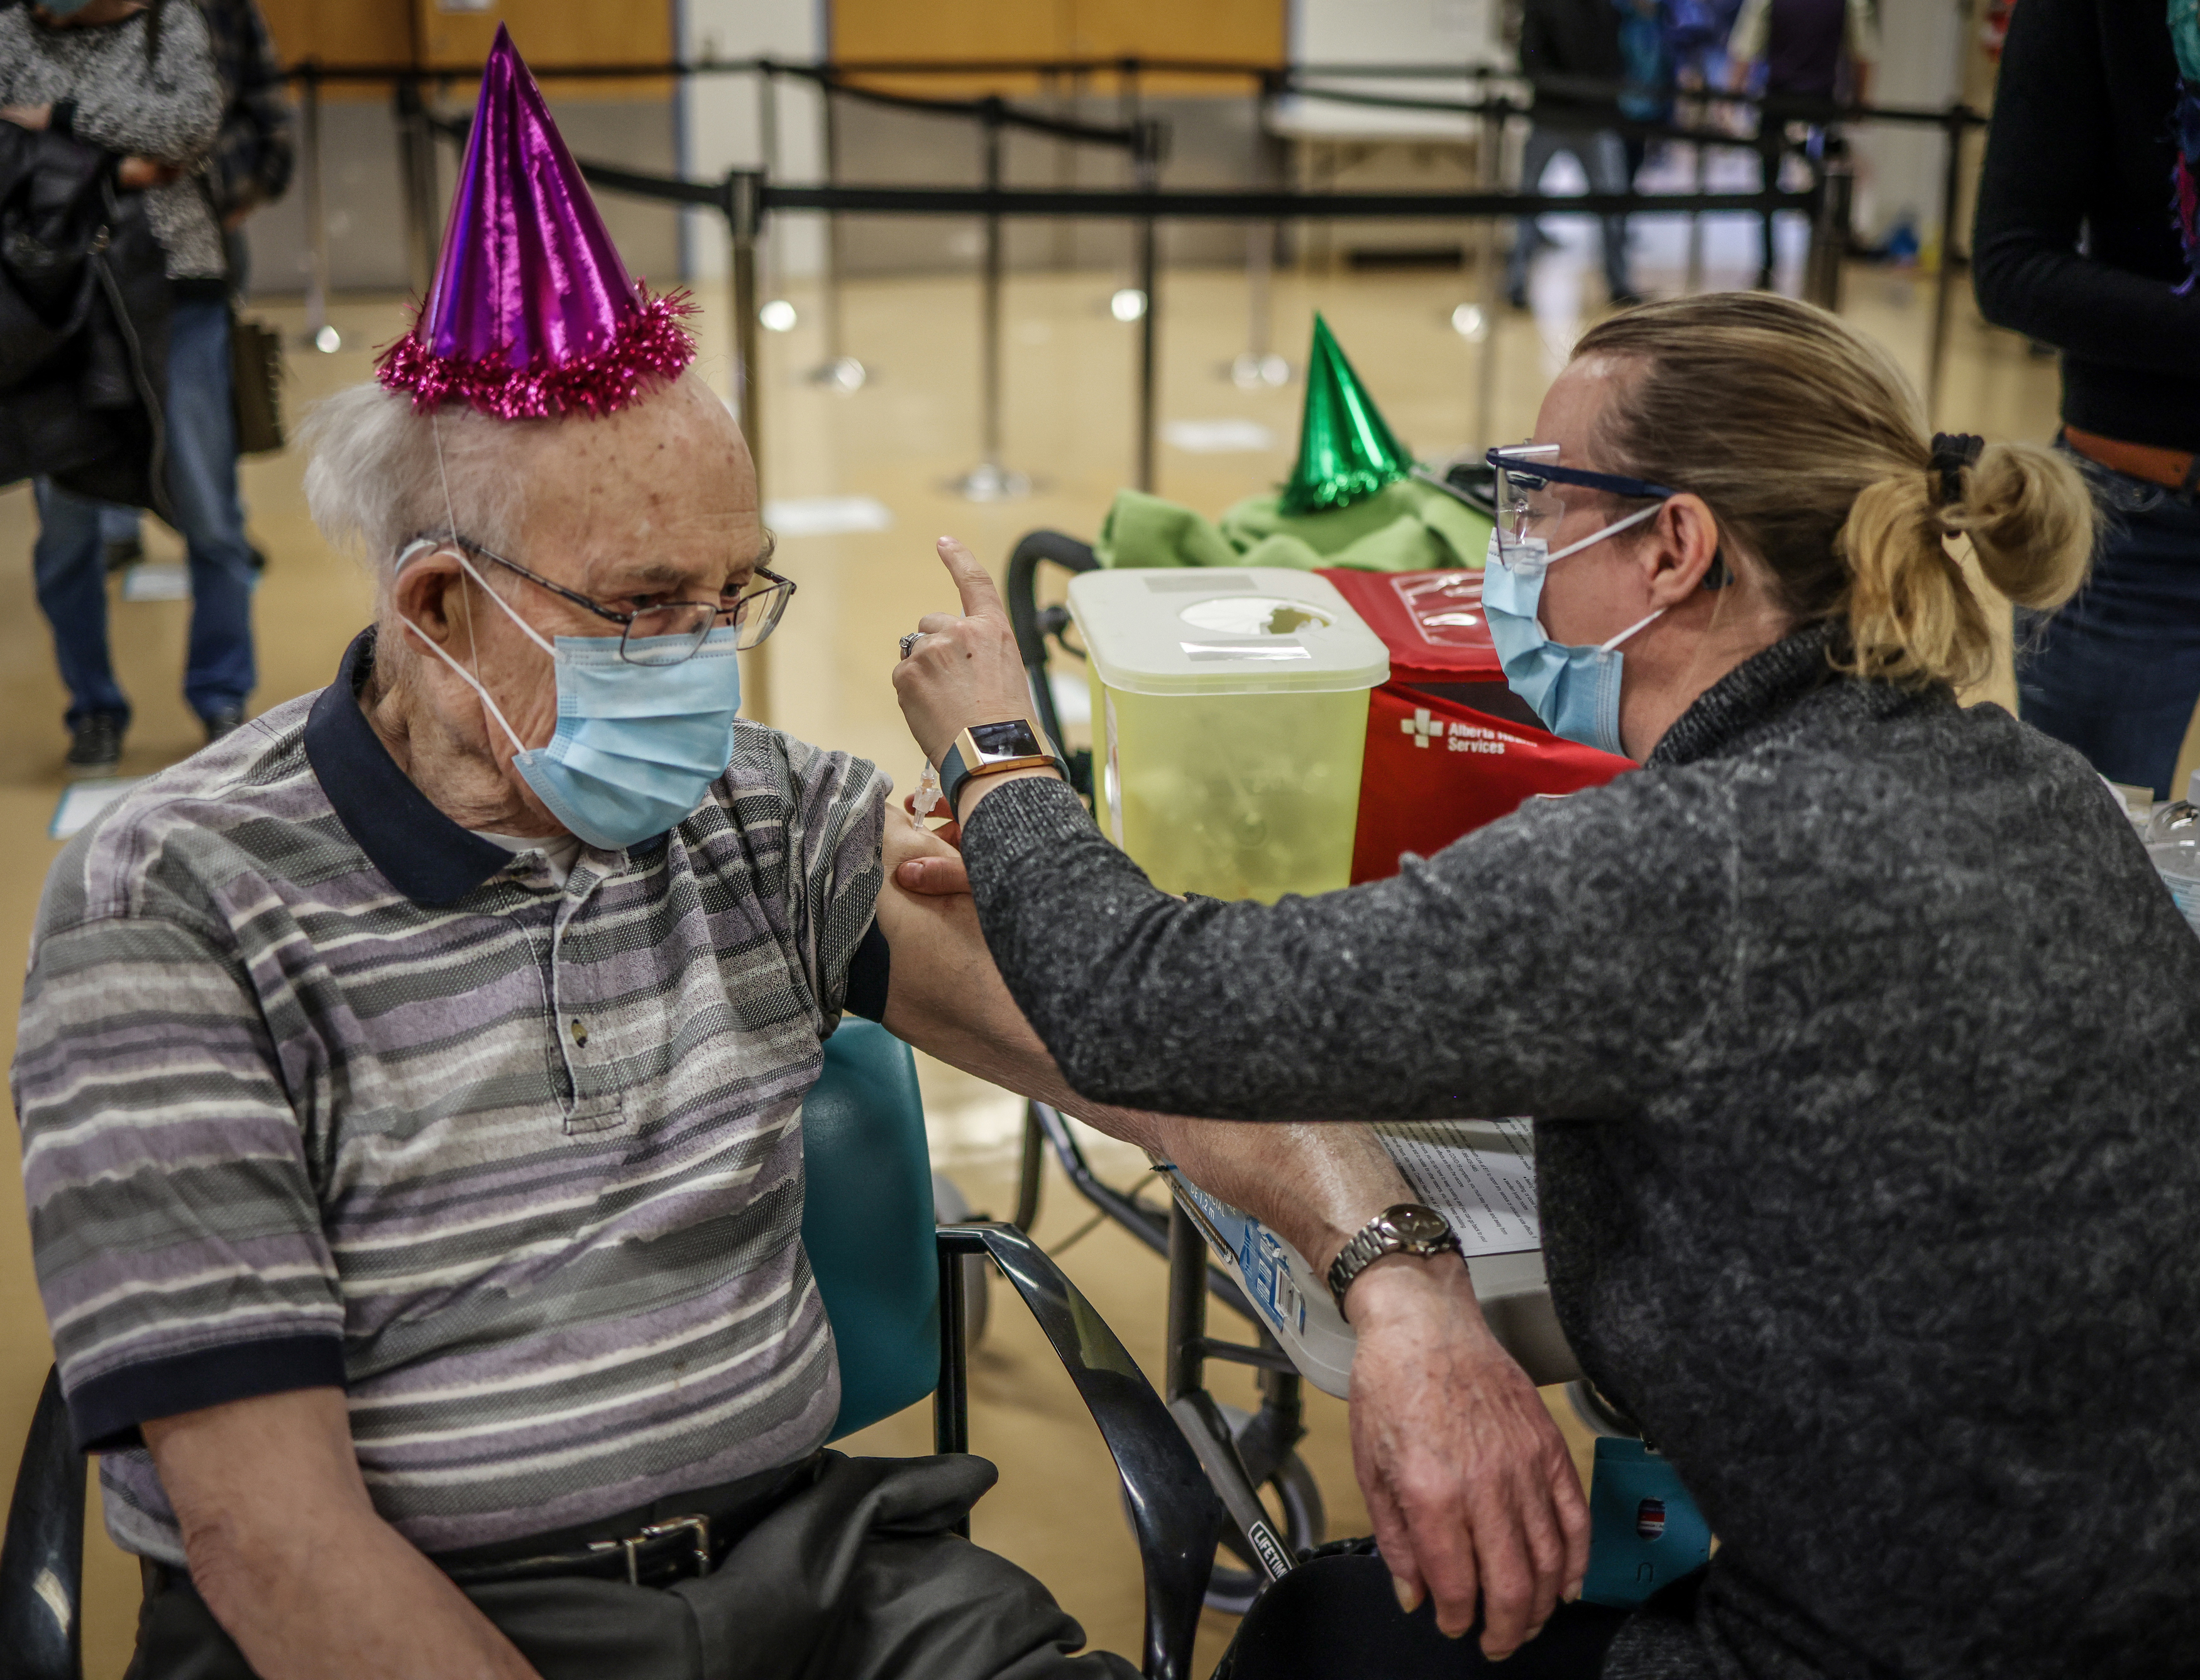 Karl Kuhnlein, 90, wears a party hat to receive his vaccination on Feb. 25 in Calgary; he's looking forward to playing pool with friends (Leah Hennel/Alberta Health Services)